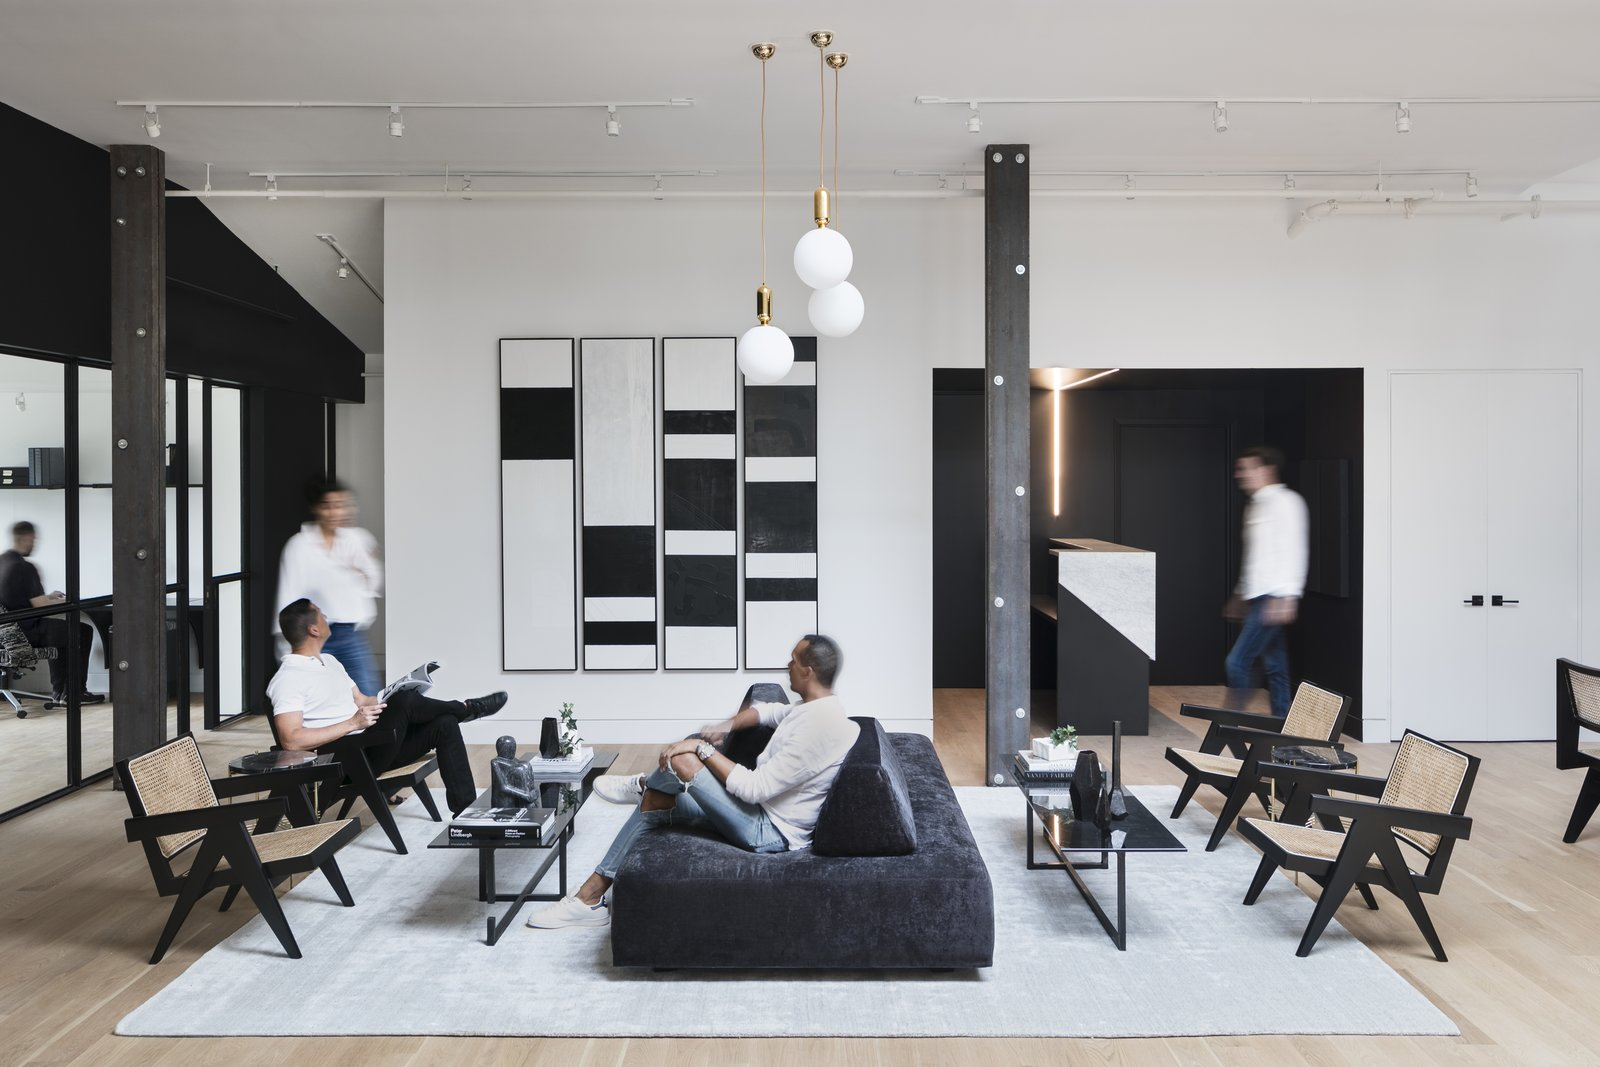 A Peek Inside a New Beautiful Co-Working Space For Creatives in Brooklyn